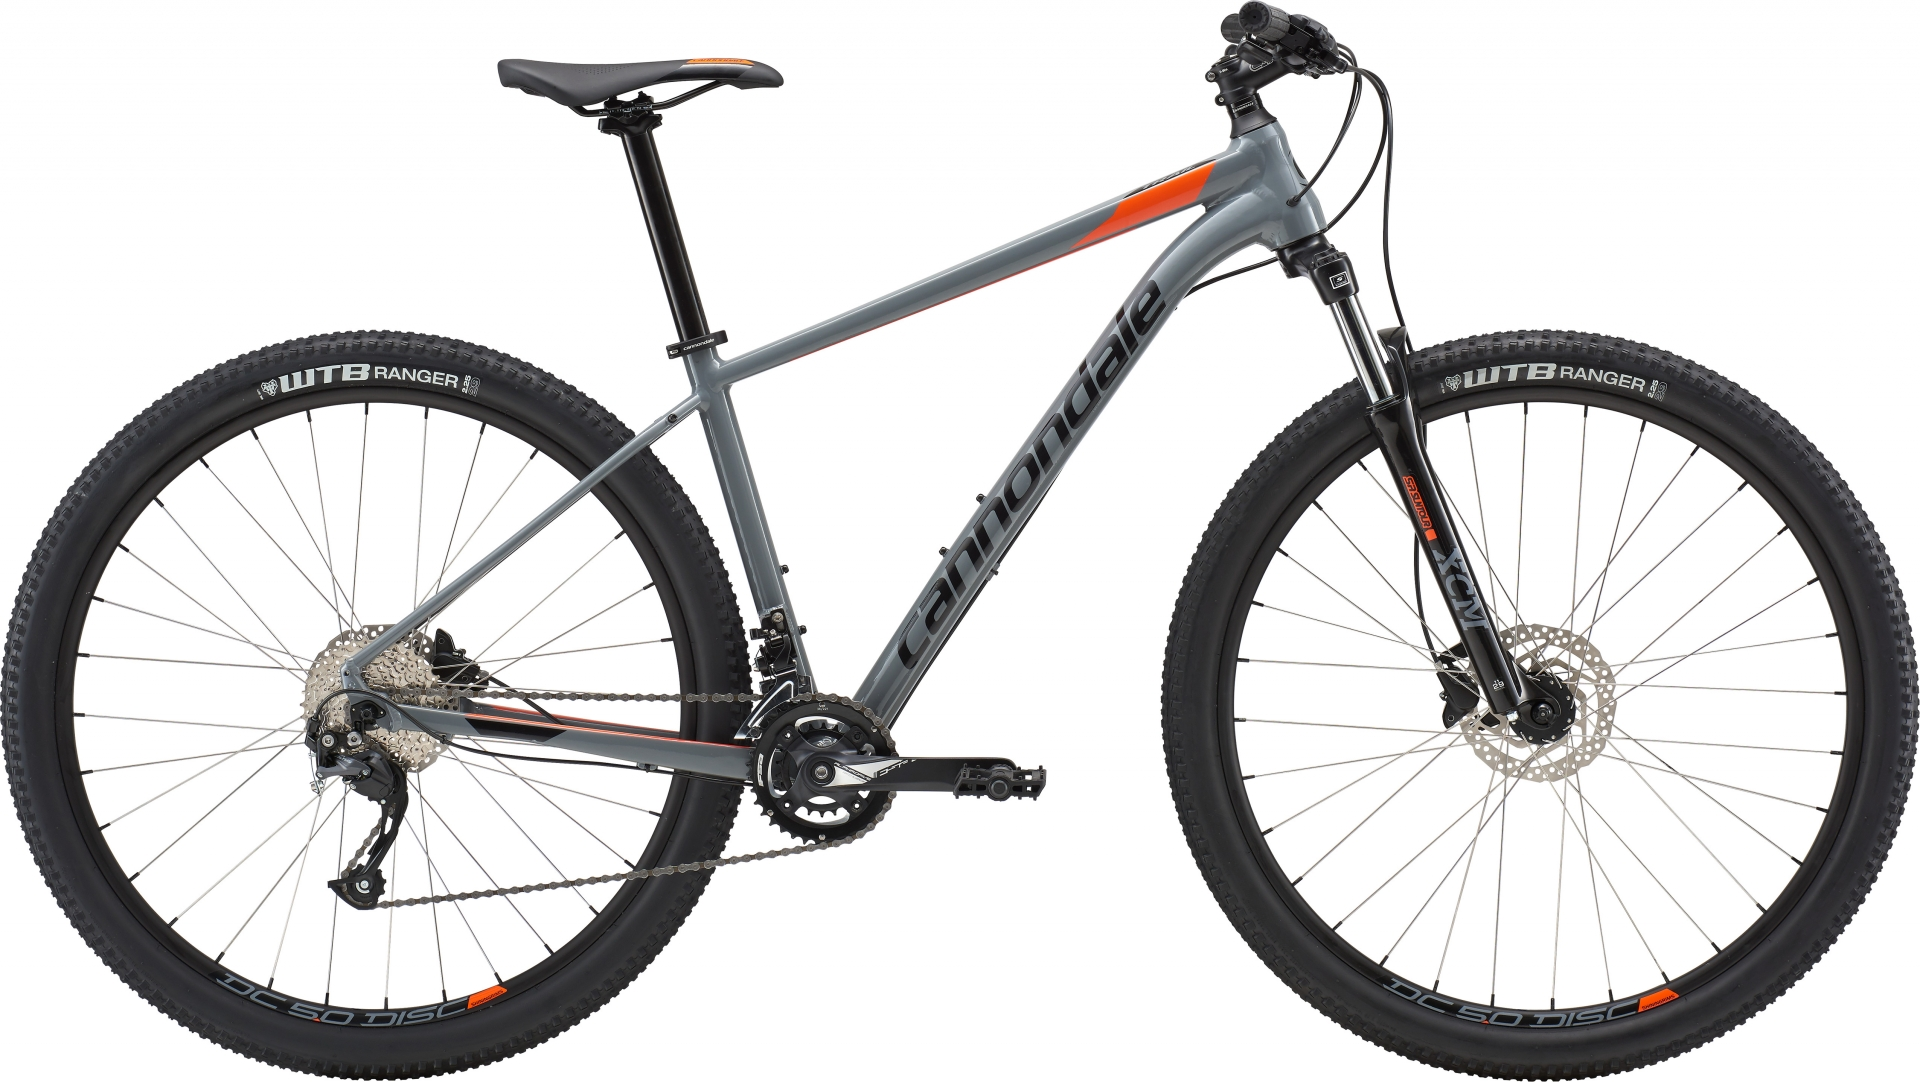 VTT Cannondale Trail 7 27.5/29 Gris/Orange - M / 29